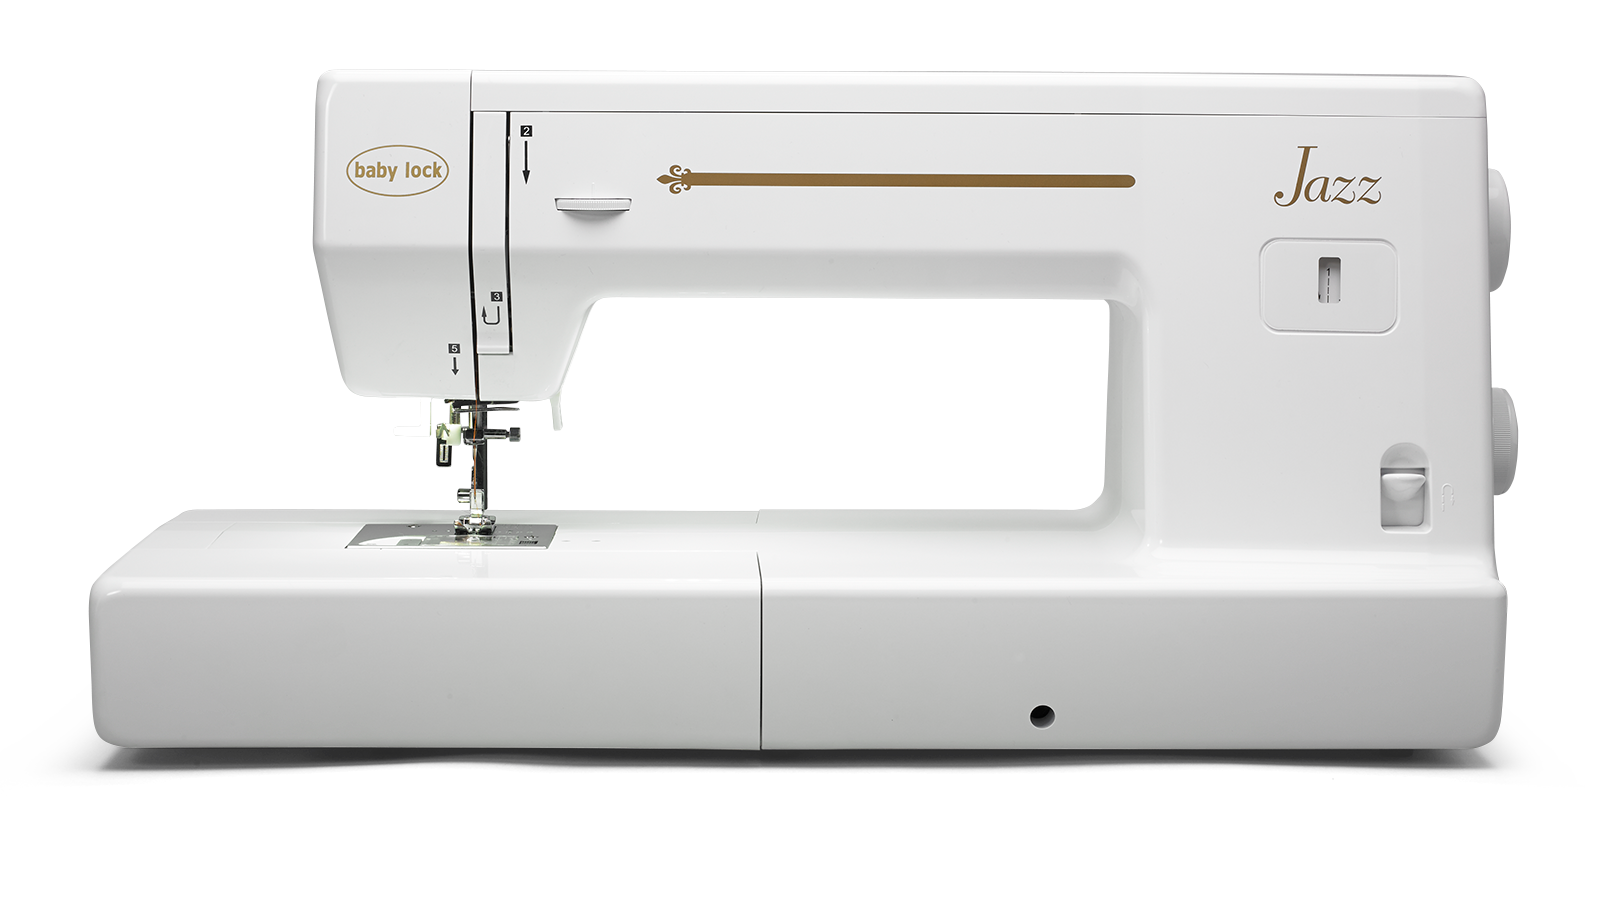 Jazz Sewing Machine Specifications Baby Lock Products Sewing Machine Babylock Sewing